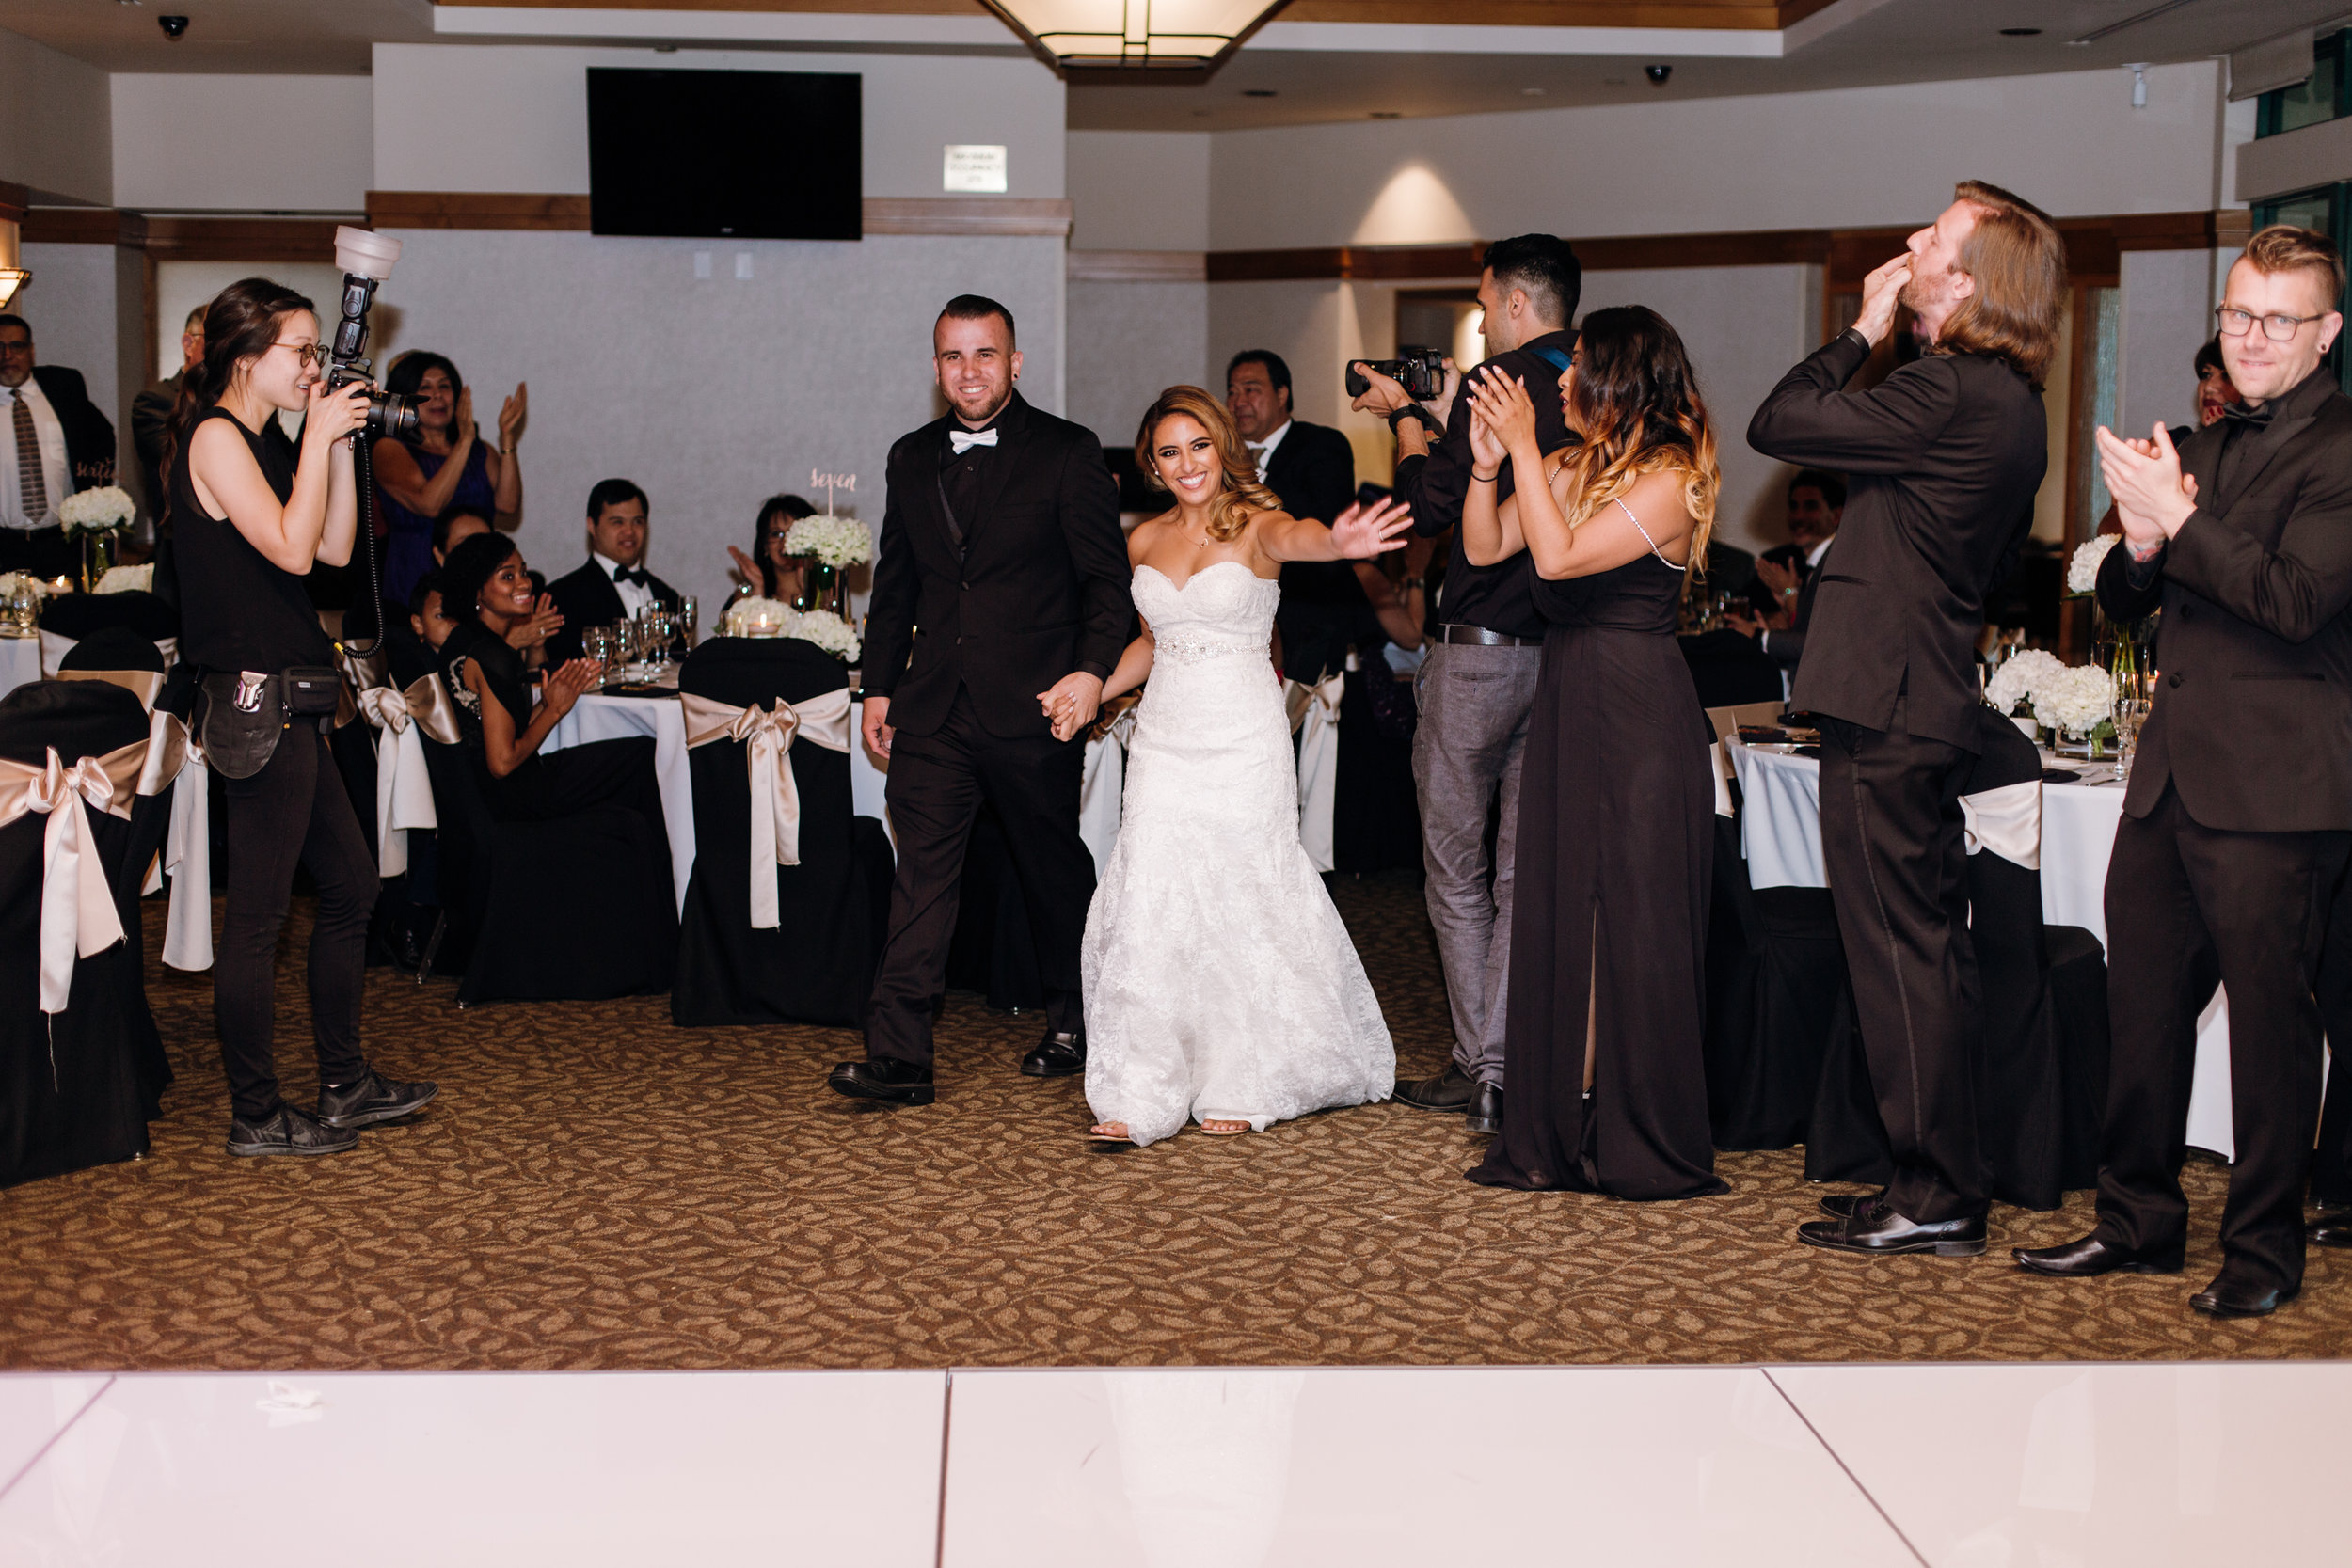 KaraNixonWeddings-CoyoteHillsGolf-Fullerton-Wedding-54.jpg